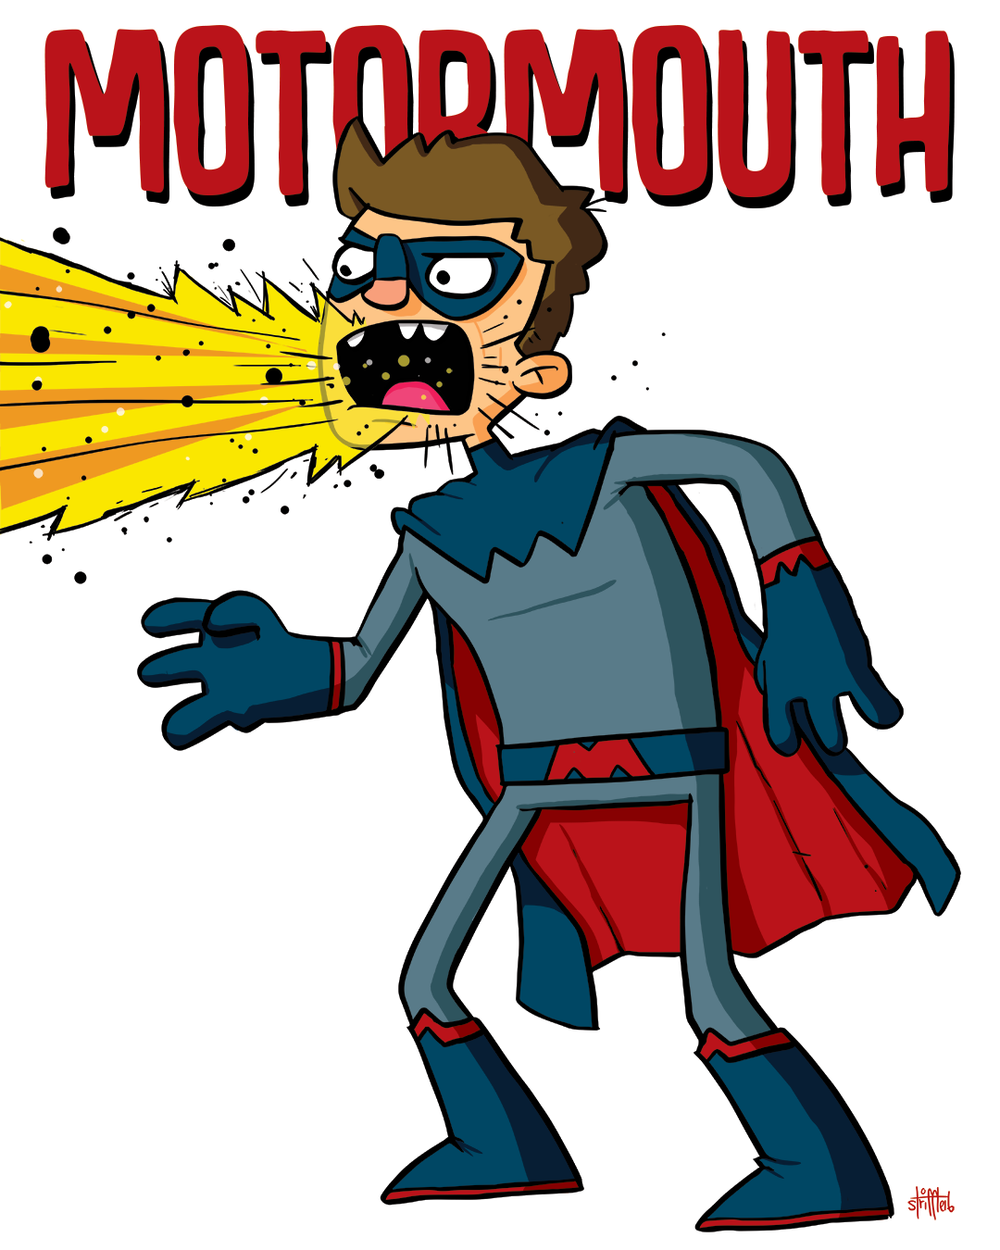 Motormouth. Superhero portrait